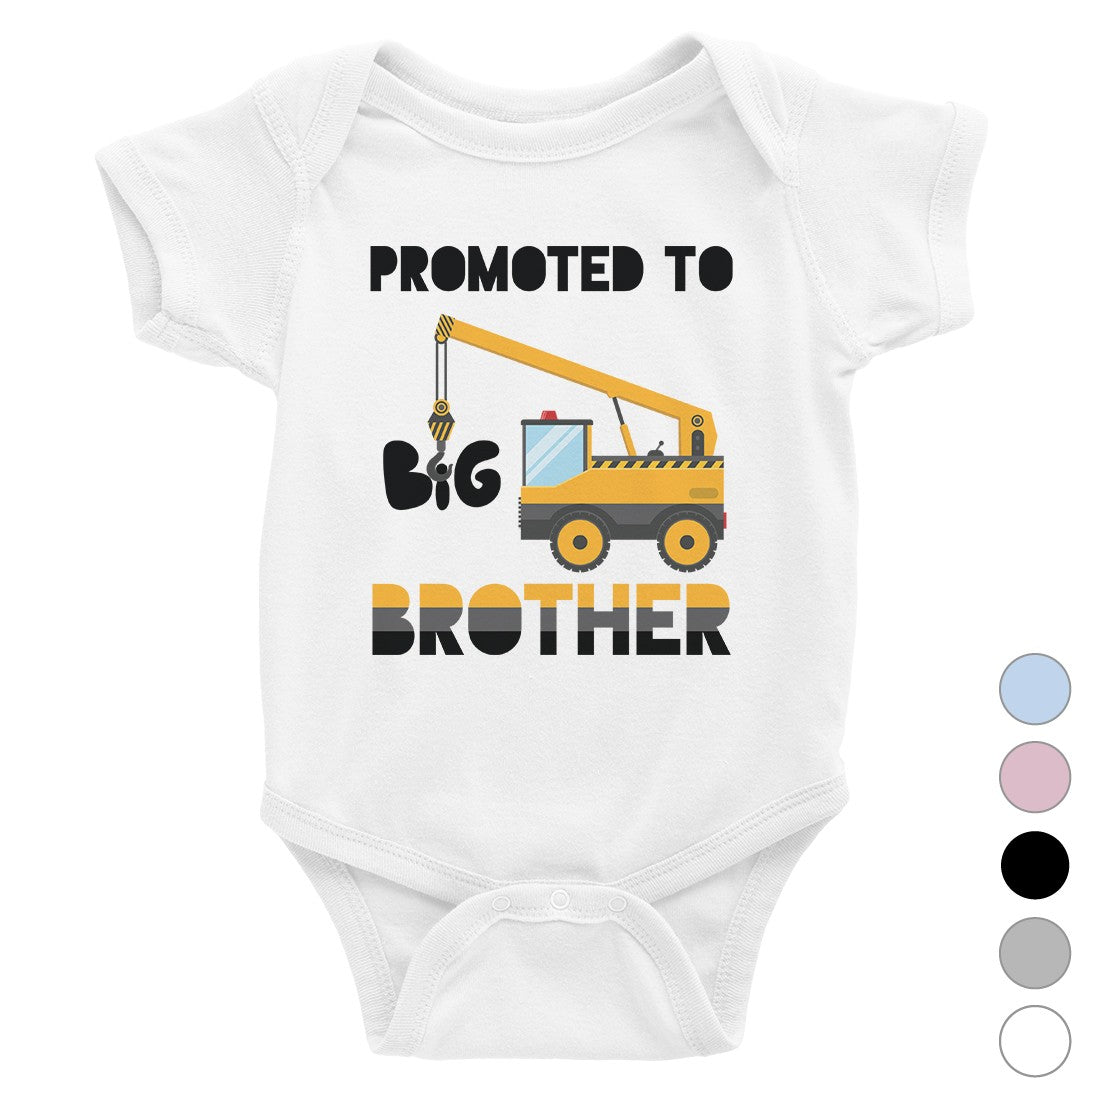 a127daf4 Promoted To Big Brother Baby Bodysuit Gift For Baby Announcement ...